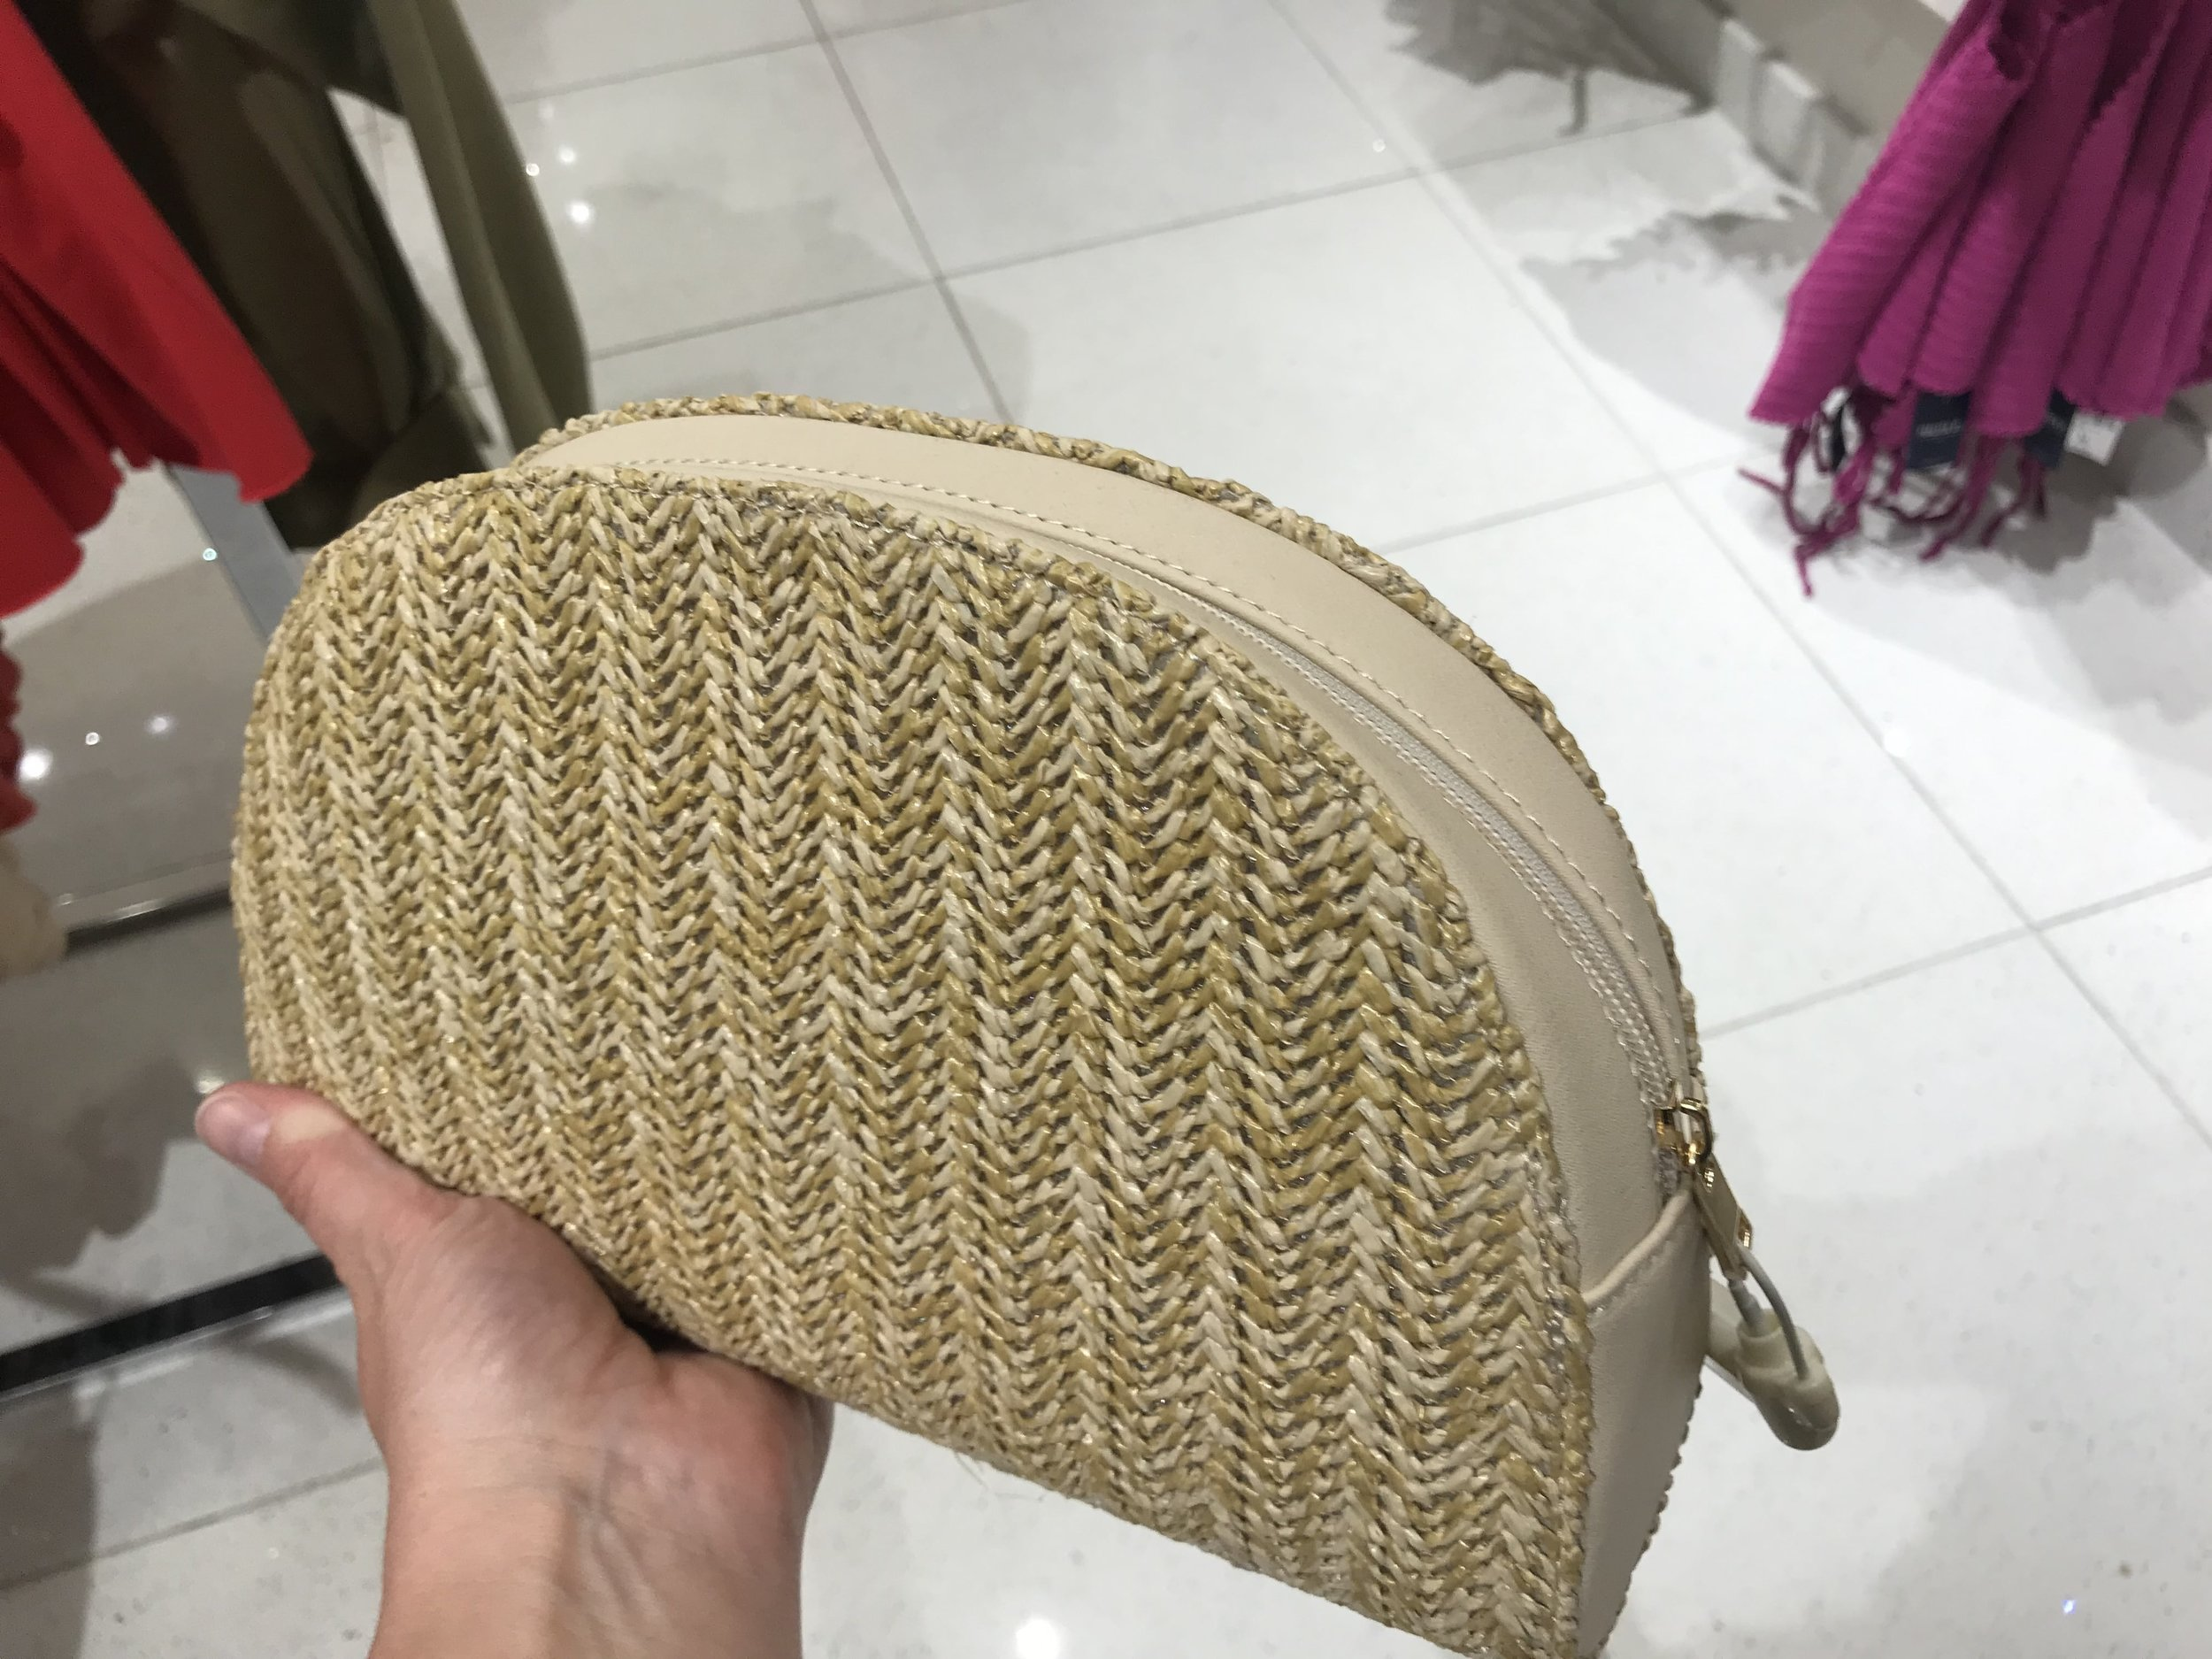 Forever 21 rattan woven clutch bag